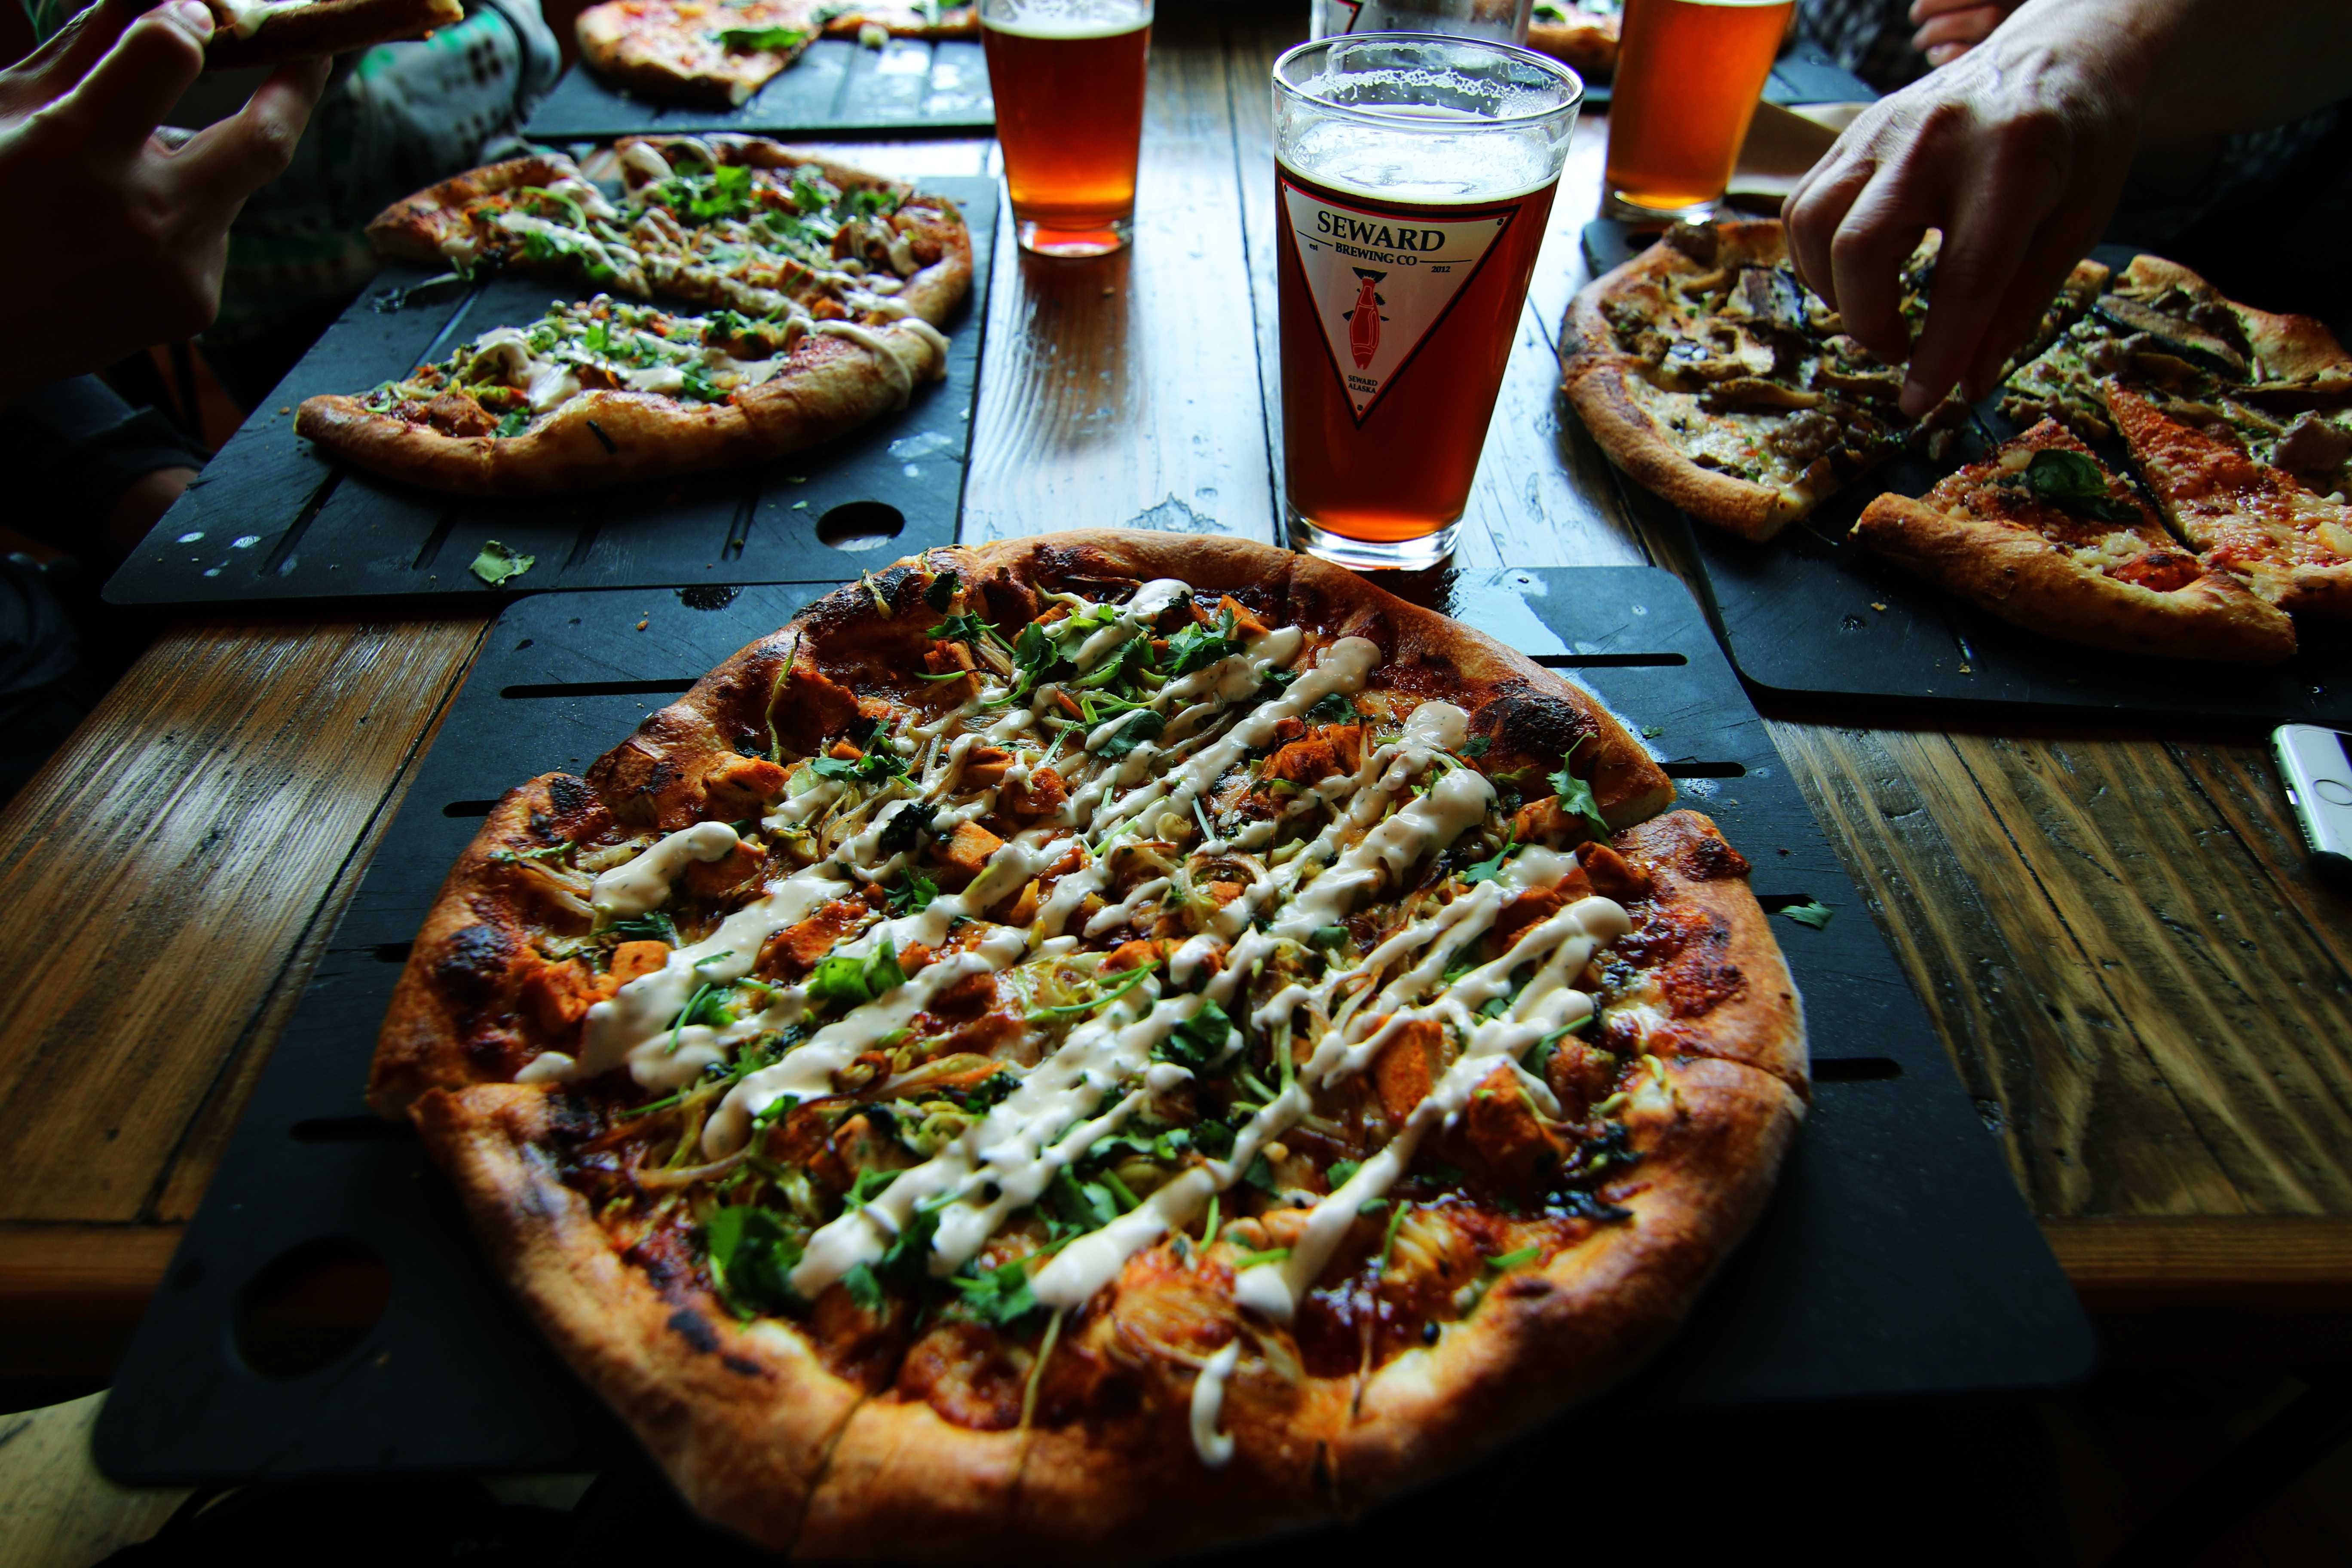 Pizza and beer on a table